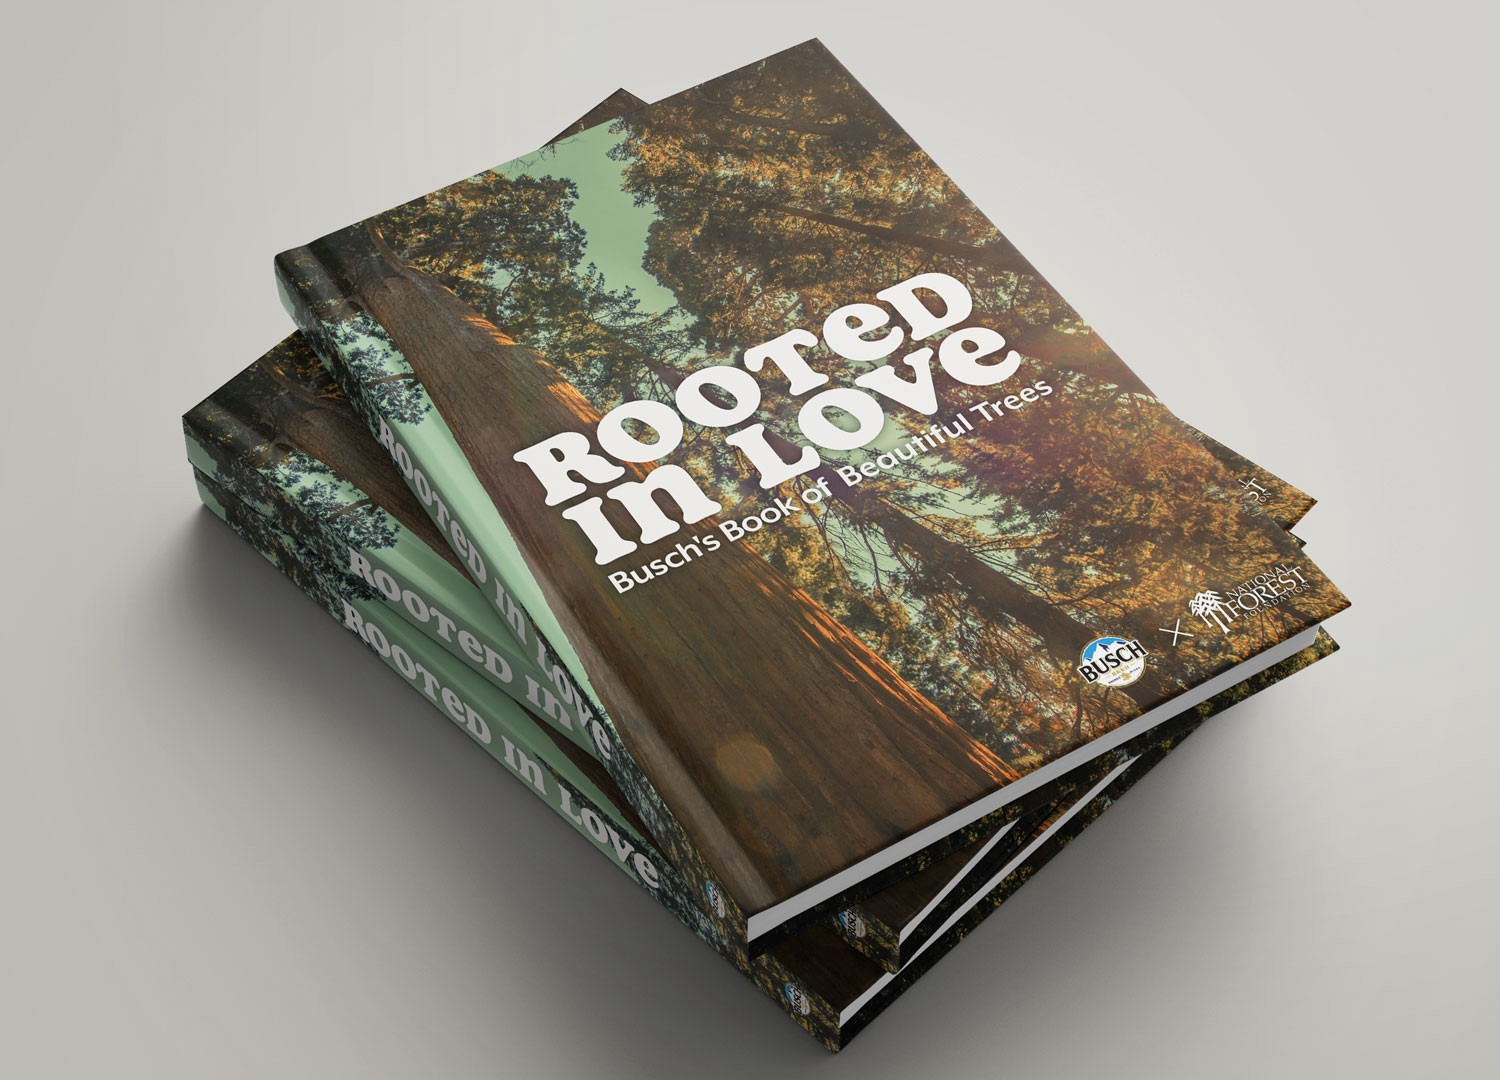 A New Coffee Table Book By Busch Just In Time For Earth Day